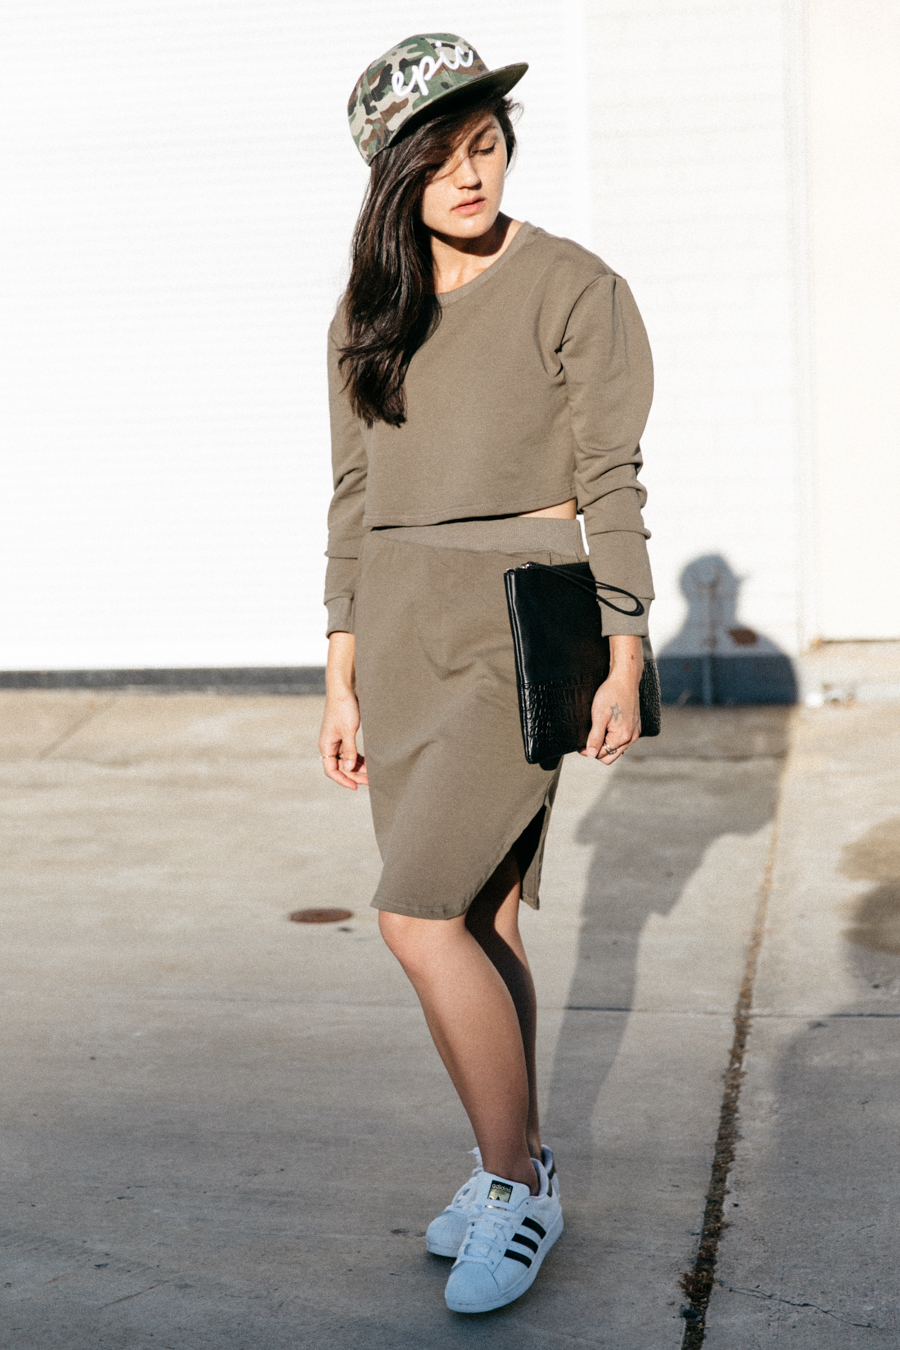 Khaki matching set. Sweater & top from Shein.